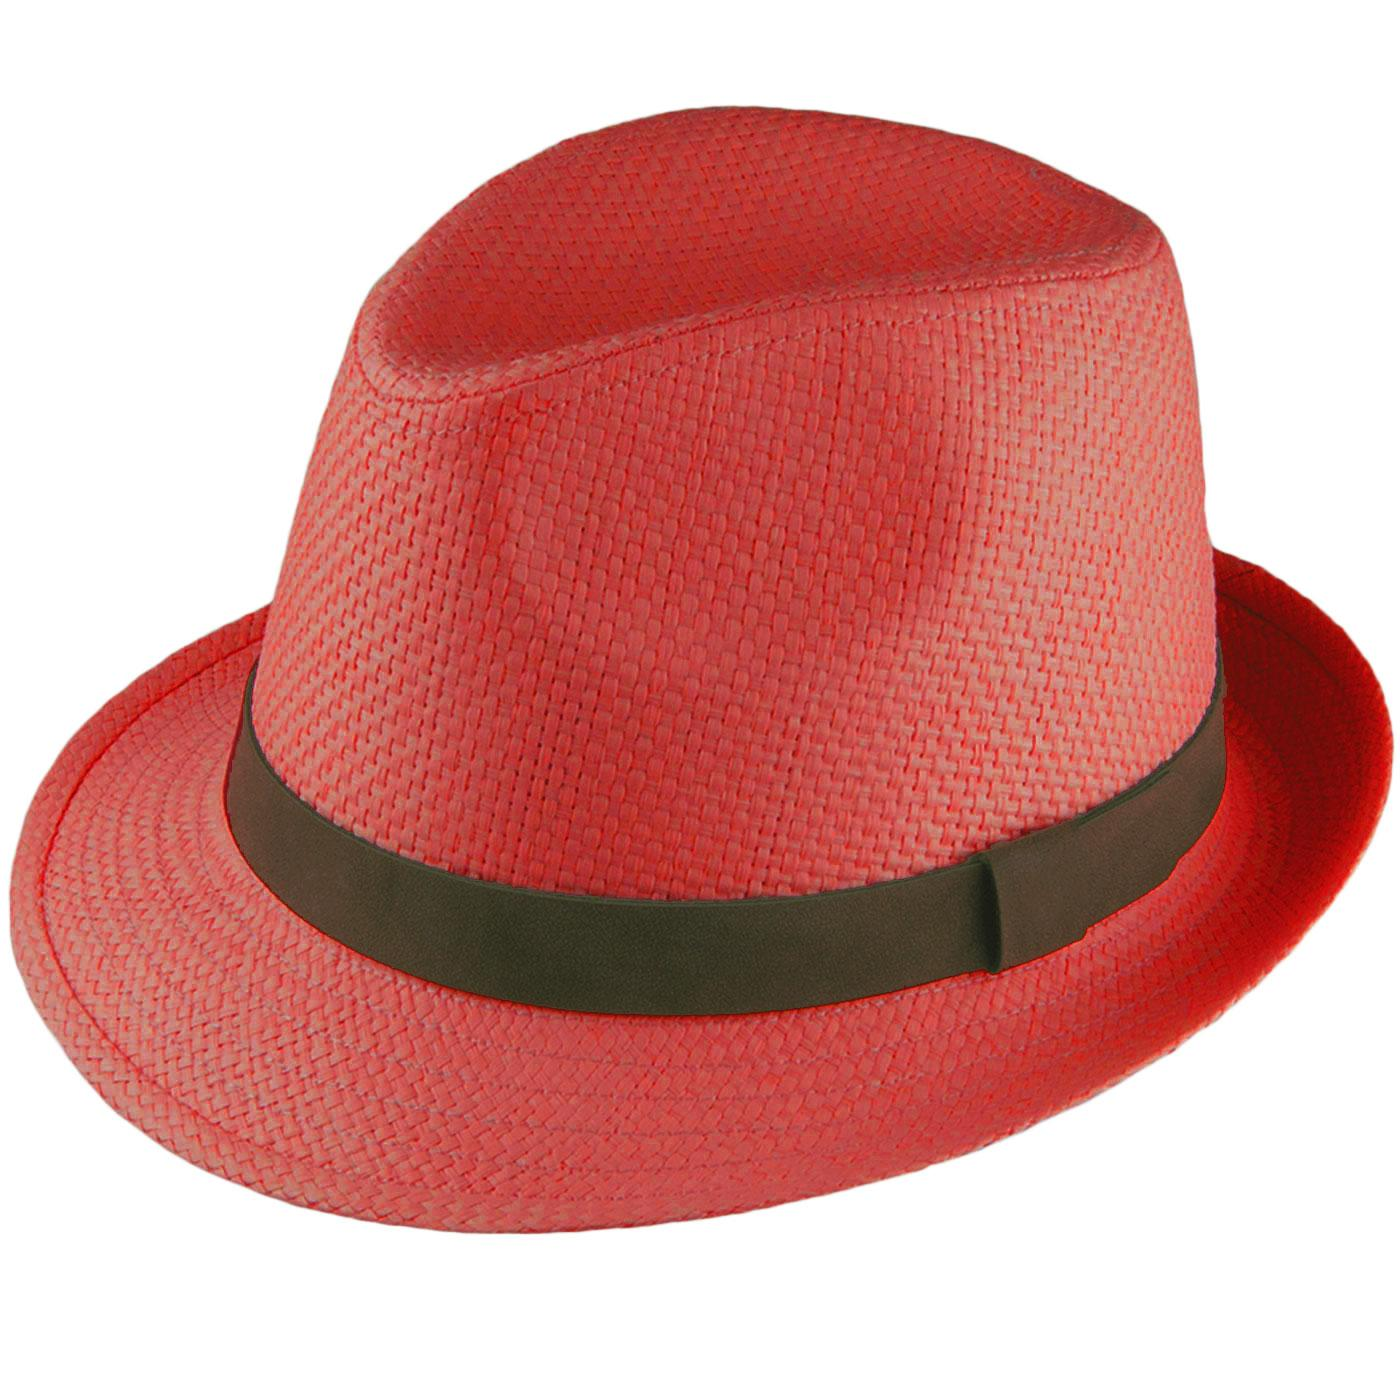 b90c89c1 FAILSWORTH Men's Retro 70s Summer Straw Trilby Hat Red